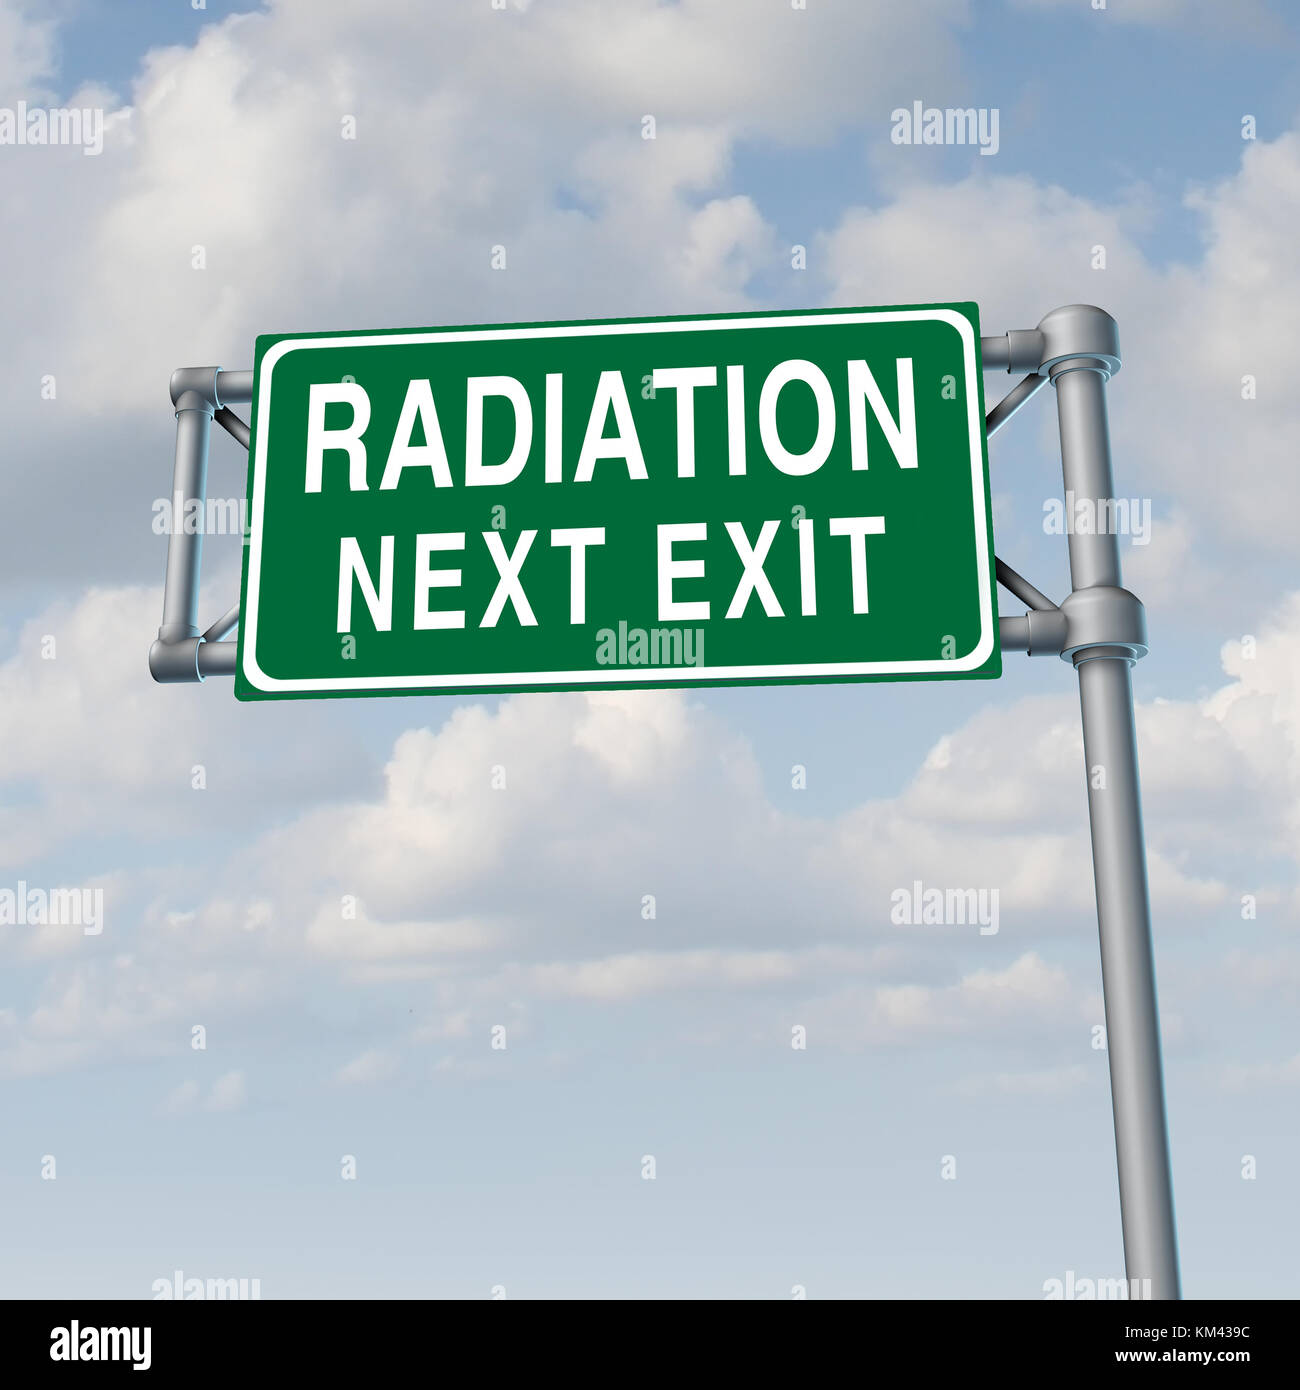 Radiation crisis concept and toxic nuclear leak warning symbol with 3D illustration elements. - Stock Image